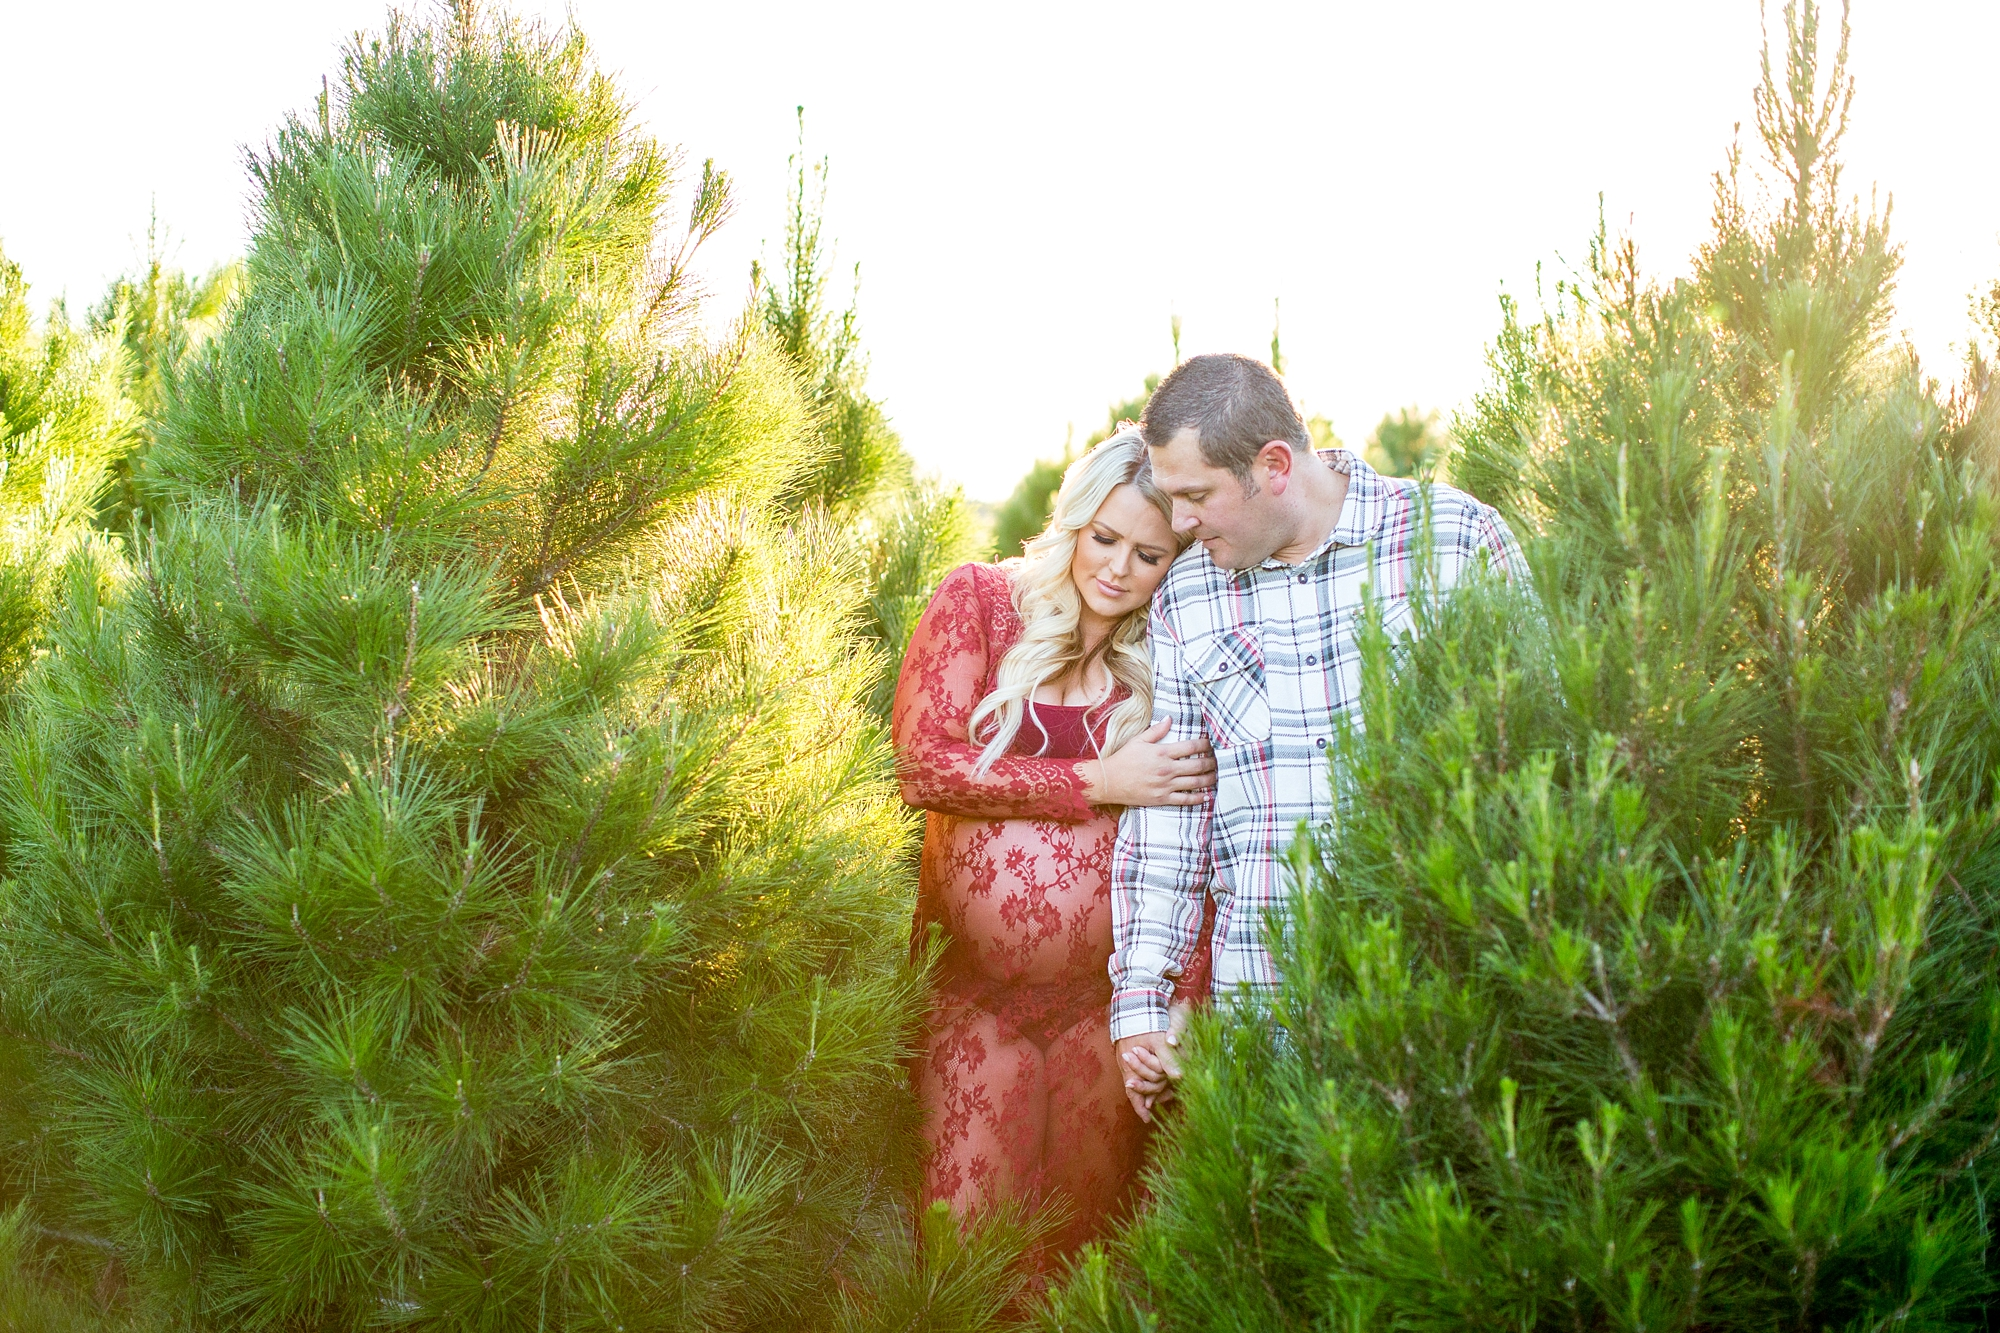 Christmas Tree Farm Photography.Ashley Trinidad Christmas Tree Farm Maternity Photography